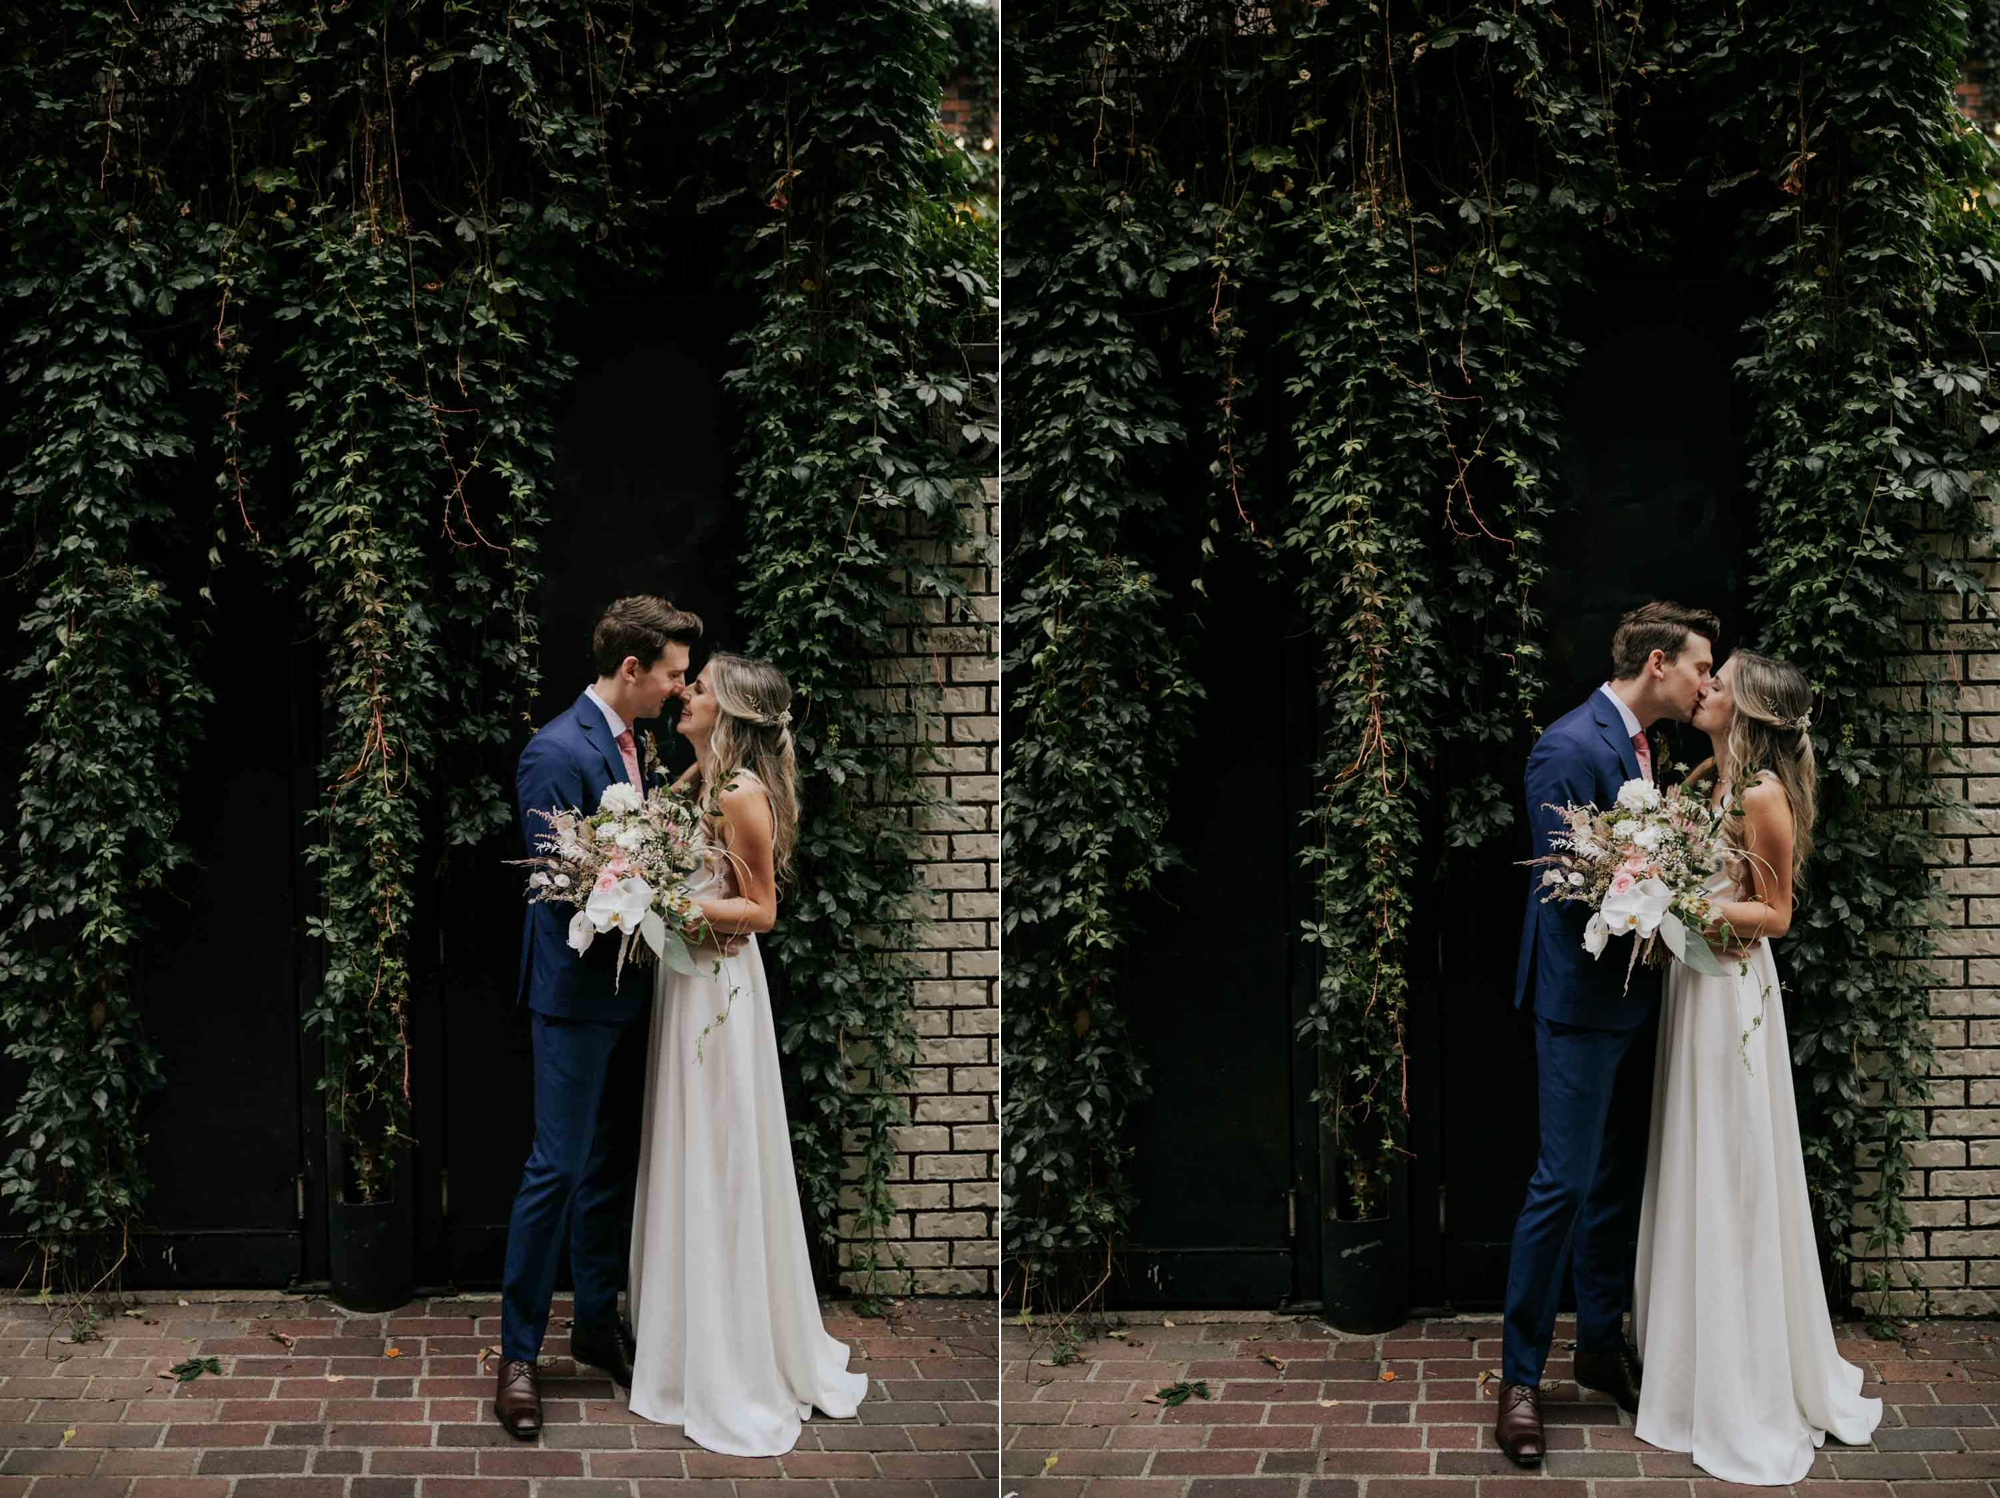 Wedding couple photo session on the city streets of Gastown in Vancouver next to a wall of vines